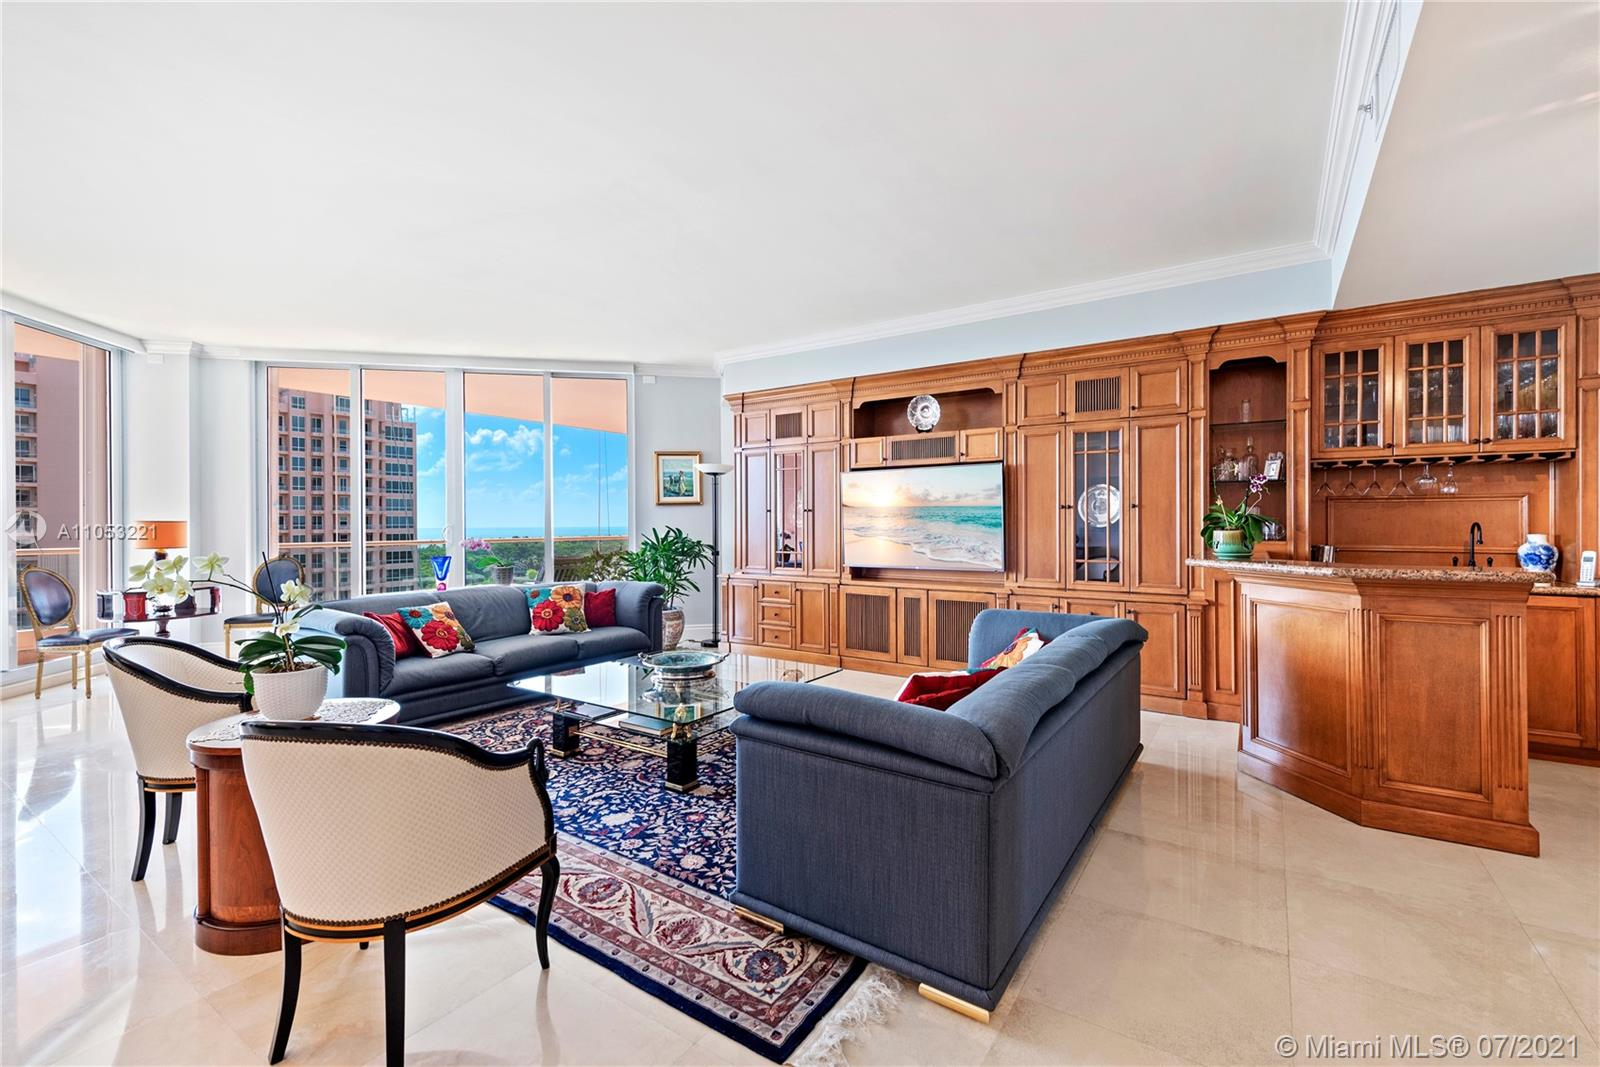 Large (3165 sft), high floor 3/3.5 condo in the prestigious Gables Club, a luxurious, waterfront, service focused condominium with beautiful grounds and 24/7 security. Stylish 11F was lovingly decorated with many upgrades by an owner designer. This condo will make you feel like you are living in a single family home plus have incredible views from each room of the eastern bay, city, and sunset over Cocoplum and the Gables.  The unit has hurricane windows out to large balconies on all sides. Enjoy resort-style amenities; spa, 2 pools, fitness center, salon, private restaurant & lounge, tennis courts and putting green. 11F comes w/ 2 covered parking spots, electric vehicle charger, and air-conditioned storage. Furniture is available for sale. Kindly schedule a private showing.